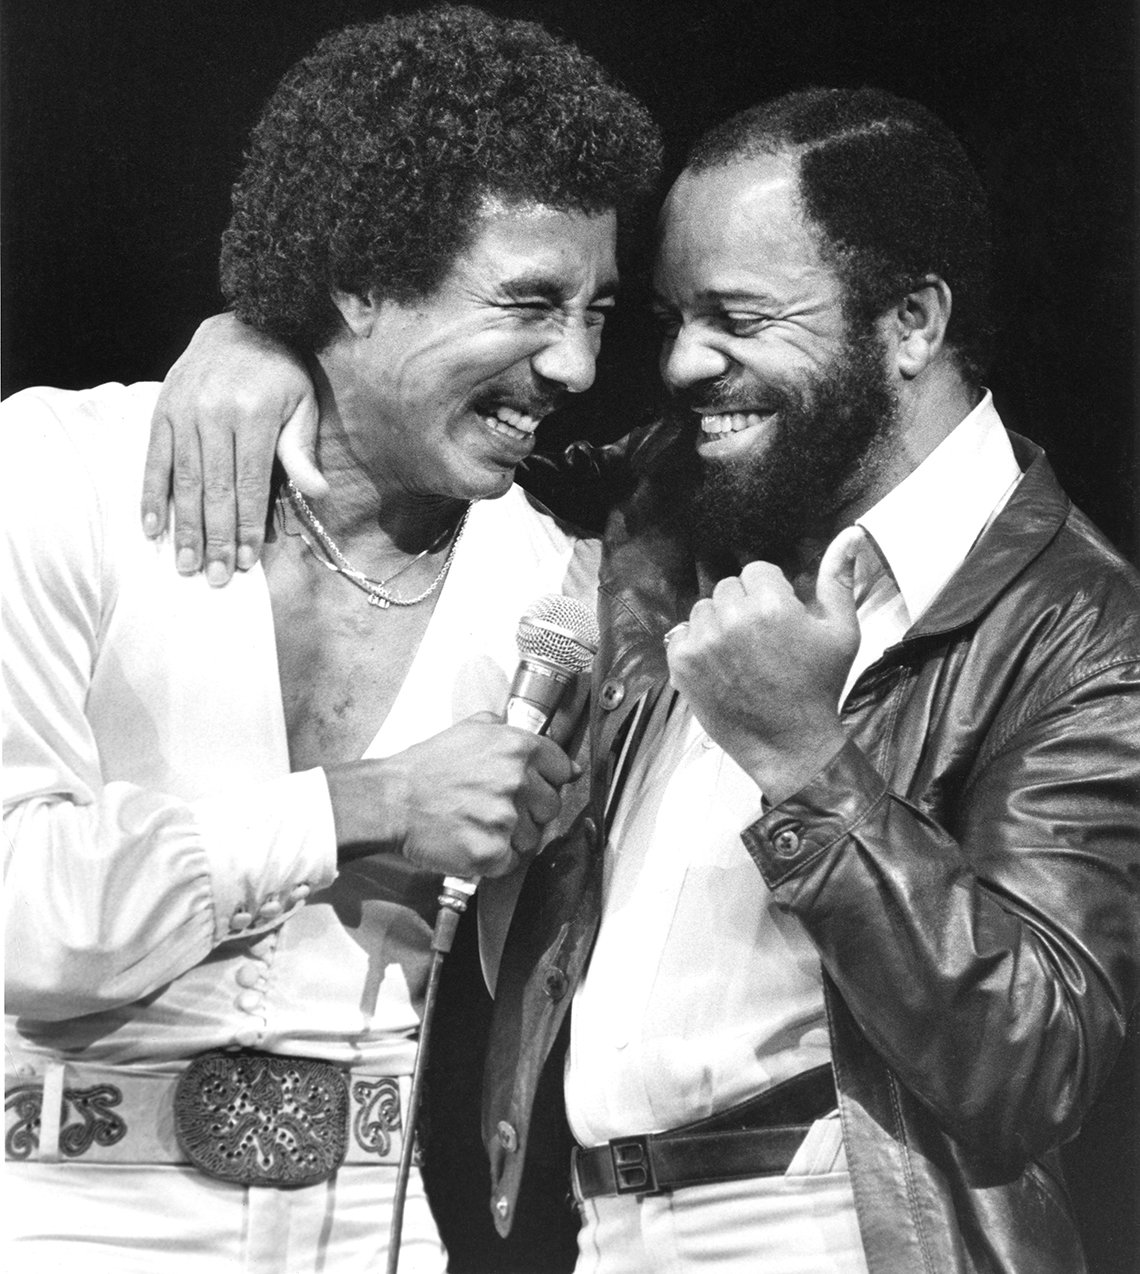 Berry Gordy with his arm around Smokey Robinson on stage.